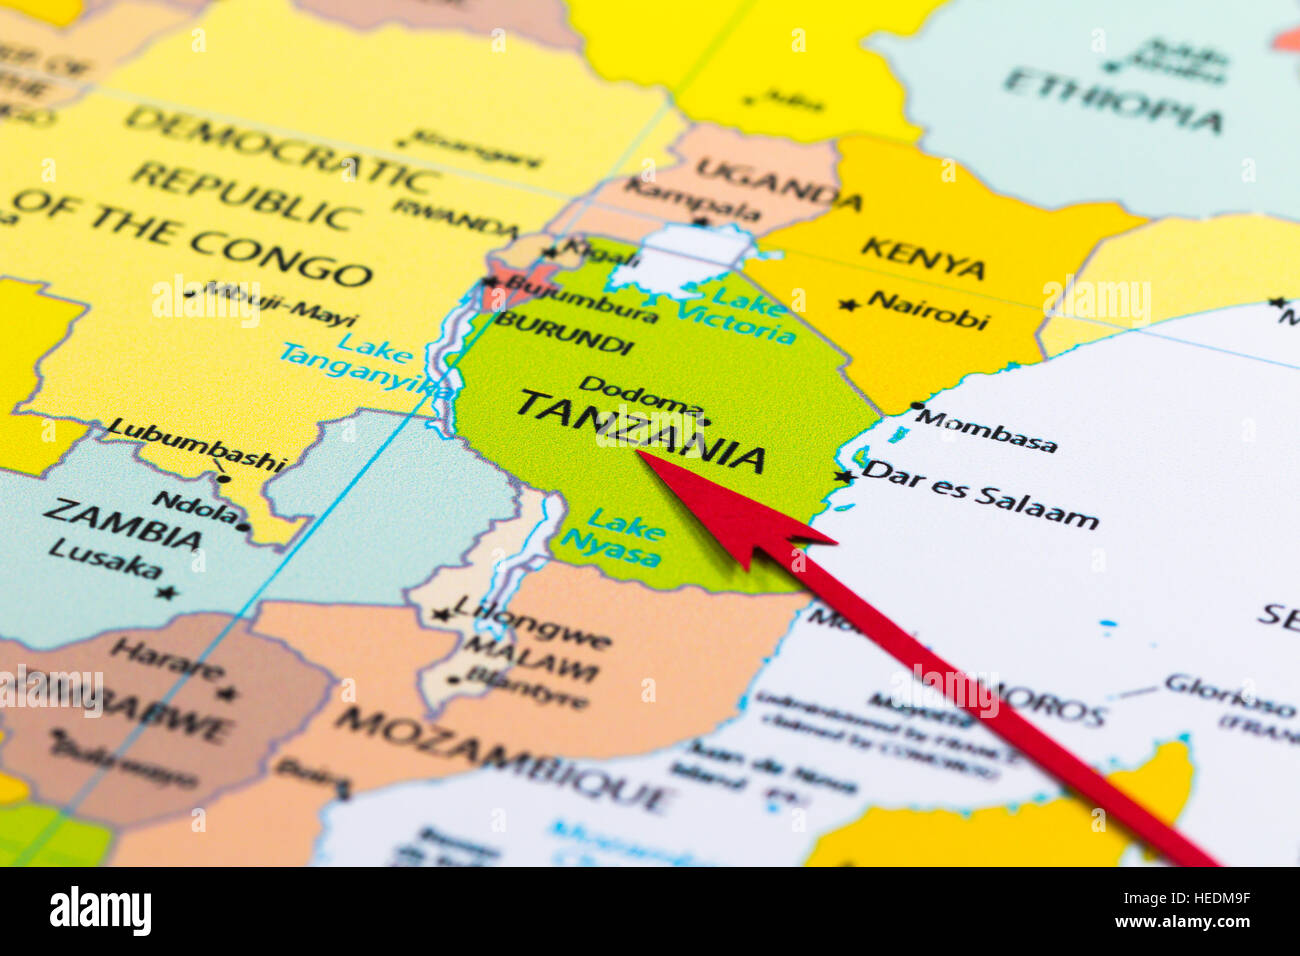 Red Arrow Pointing Tanzania On The Map Of Africa Continent Stock - Map of tanzania